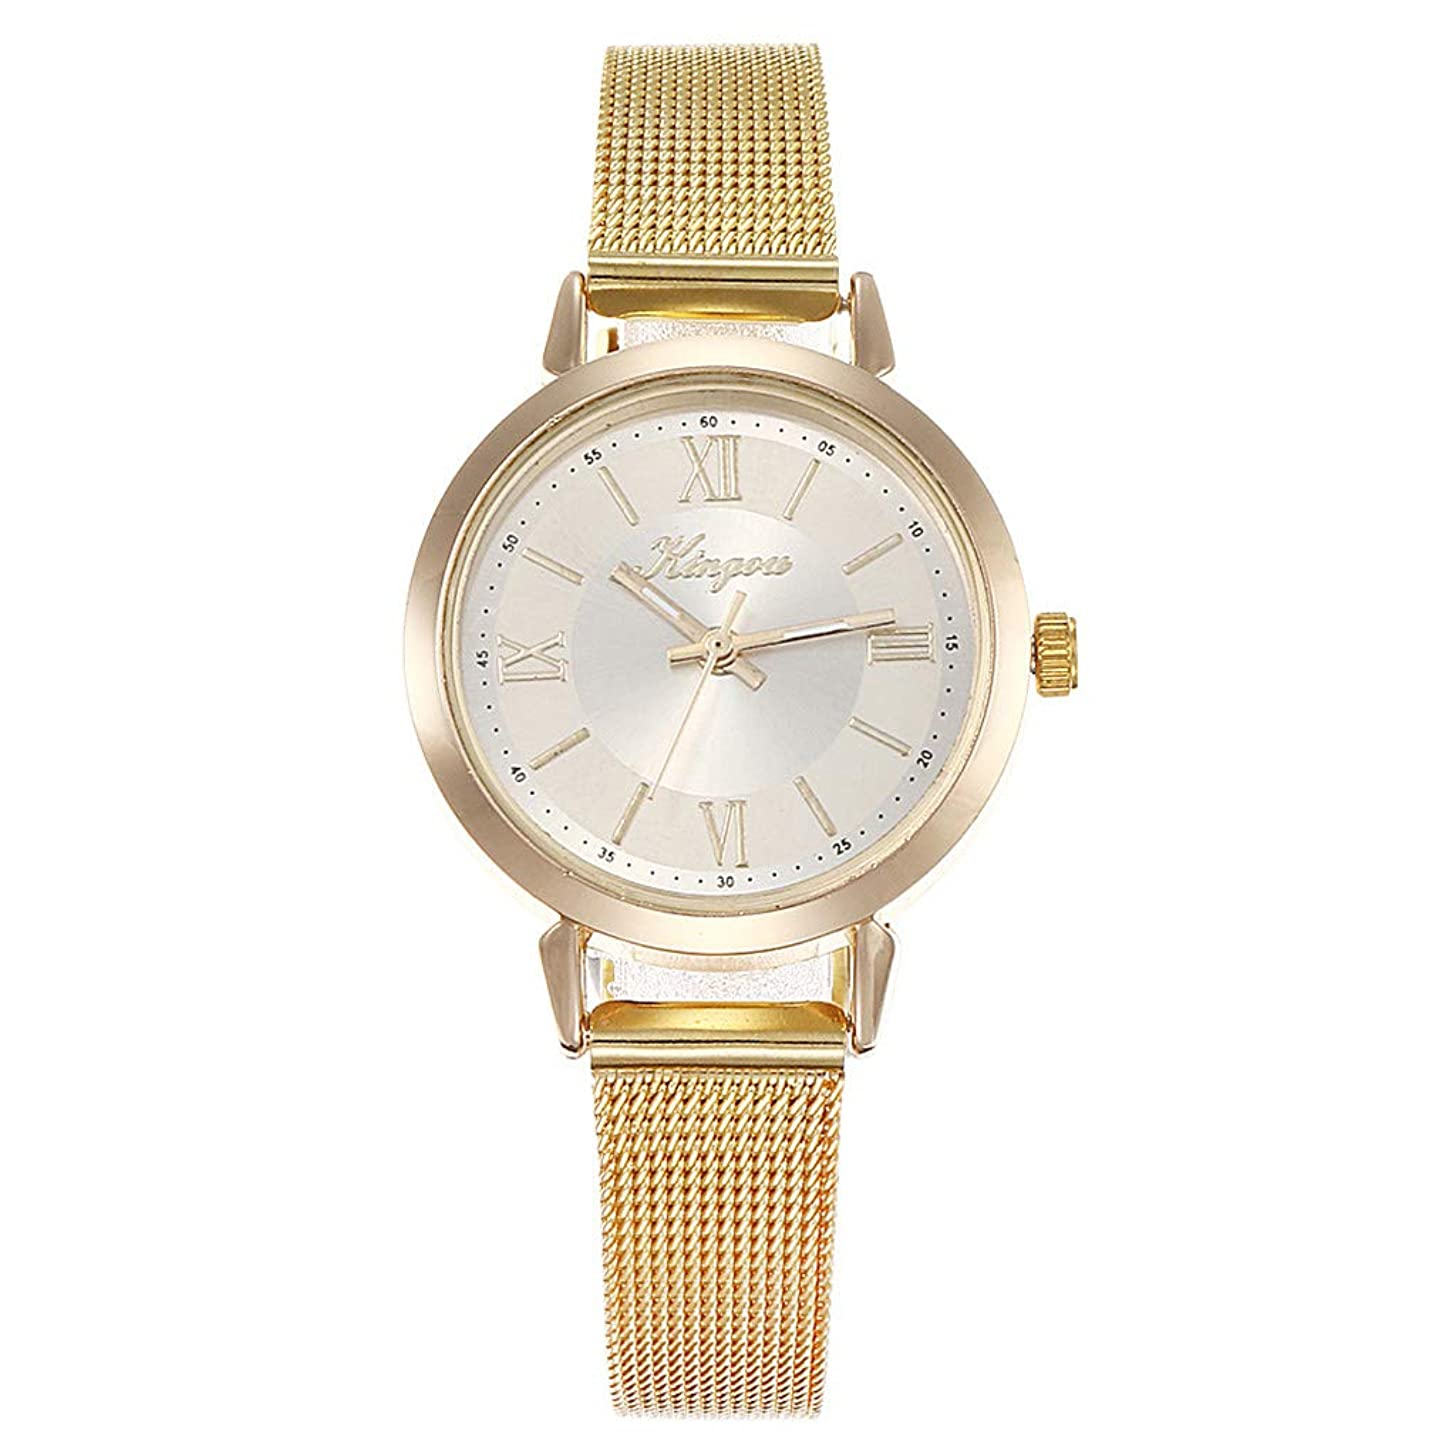 LUCAMORE Watches for Women,Mesh Stainless Steel Ladies Wristwatch,Casual Women Quartz Watches Gifts for Women